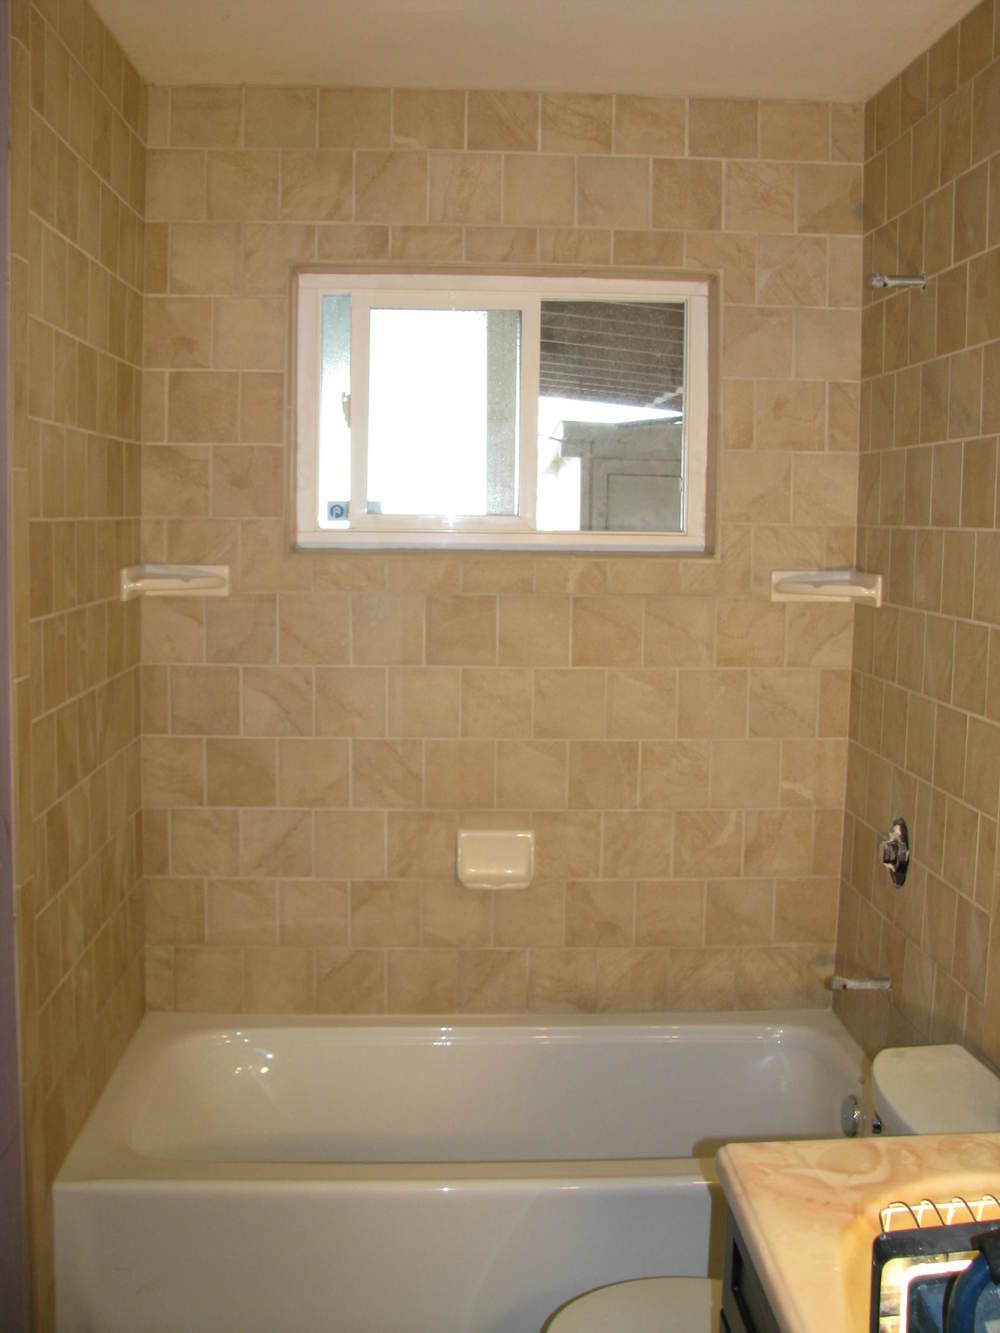 Entire Tub Shower Area.JPG